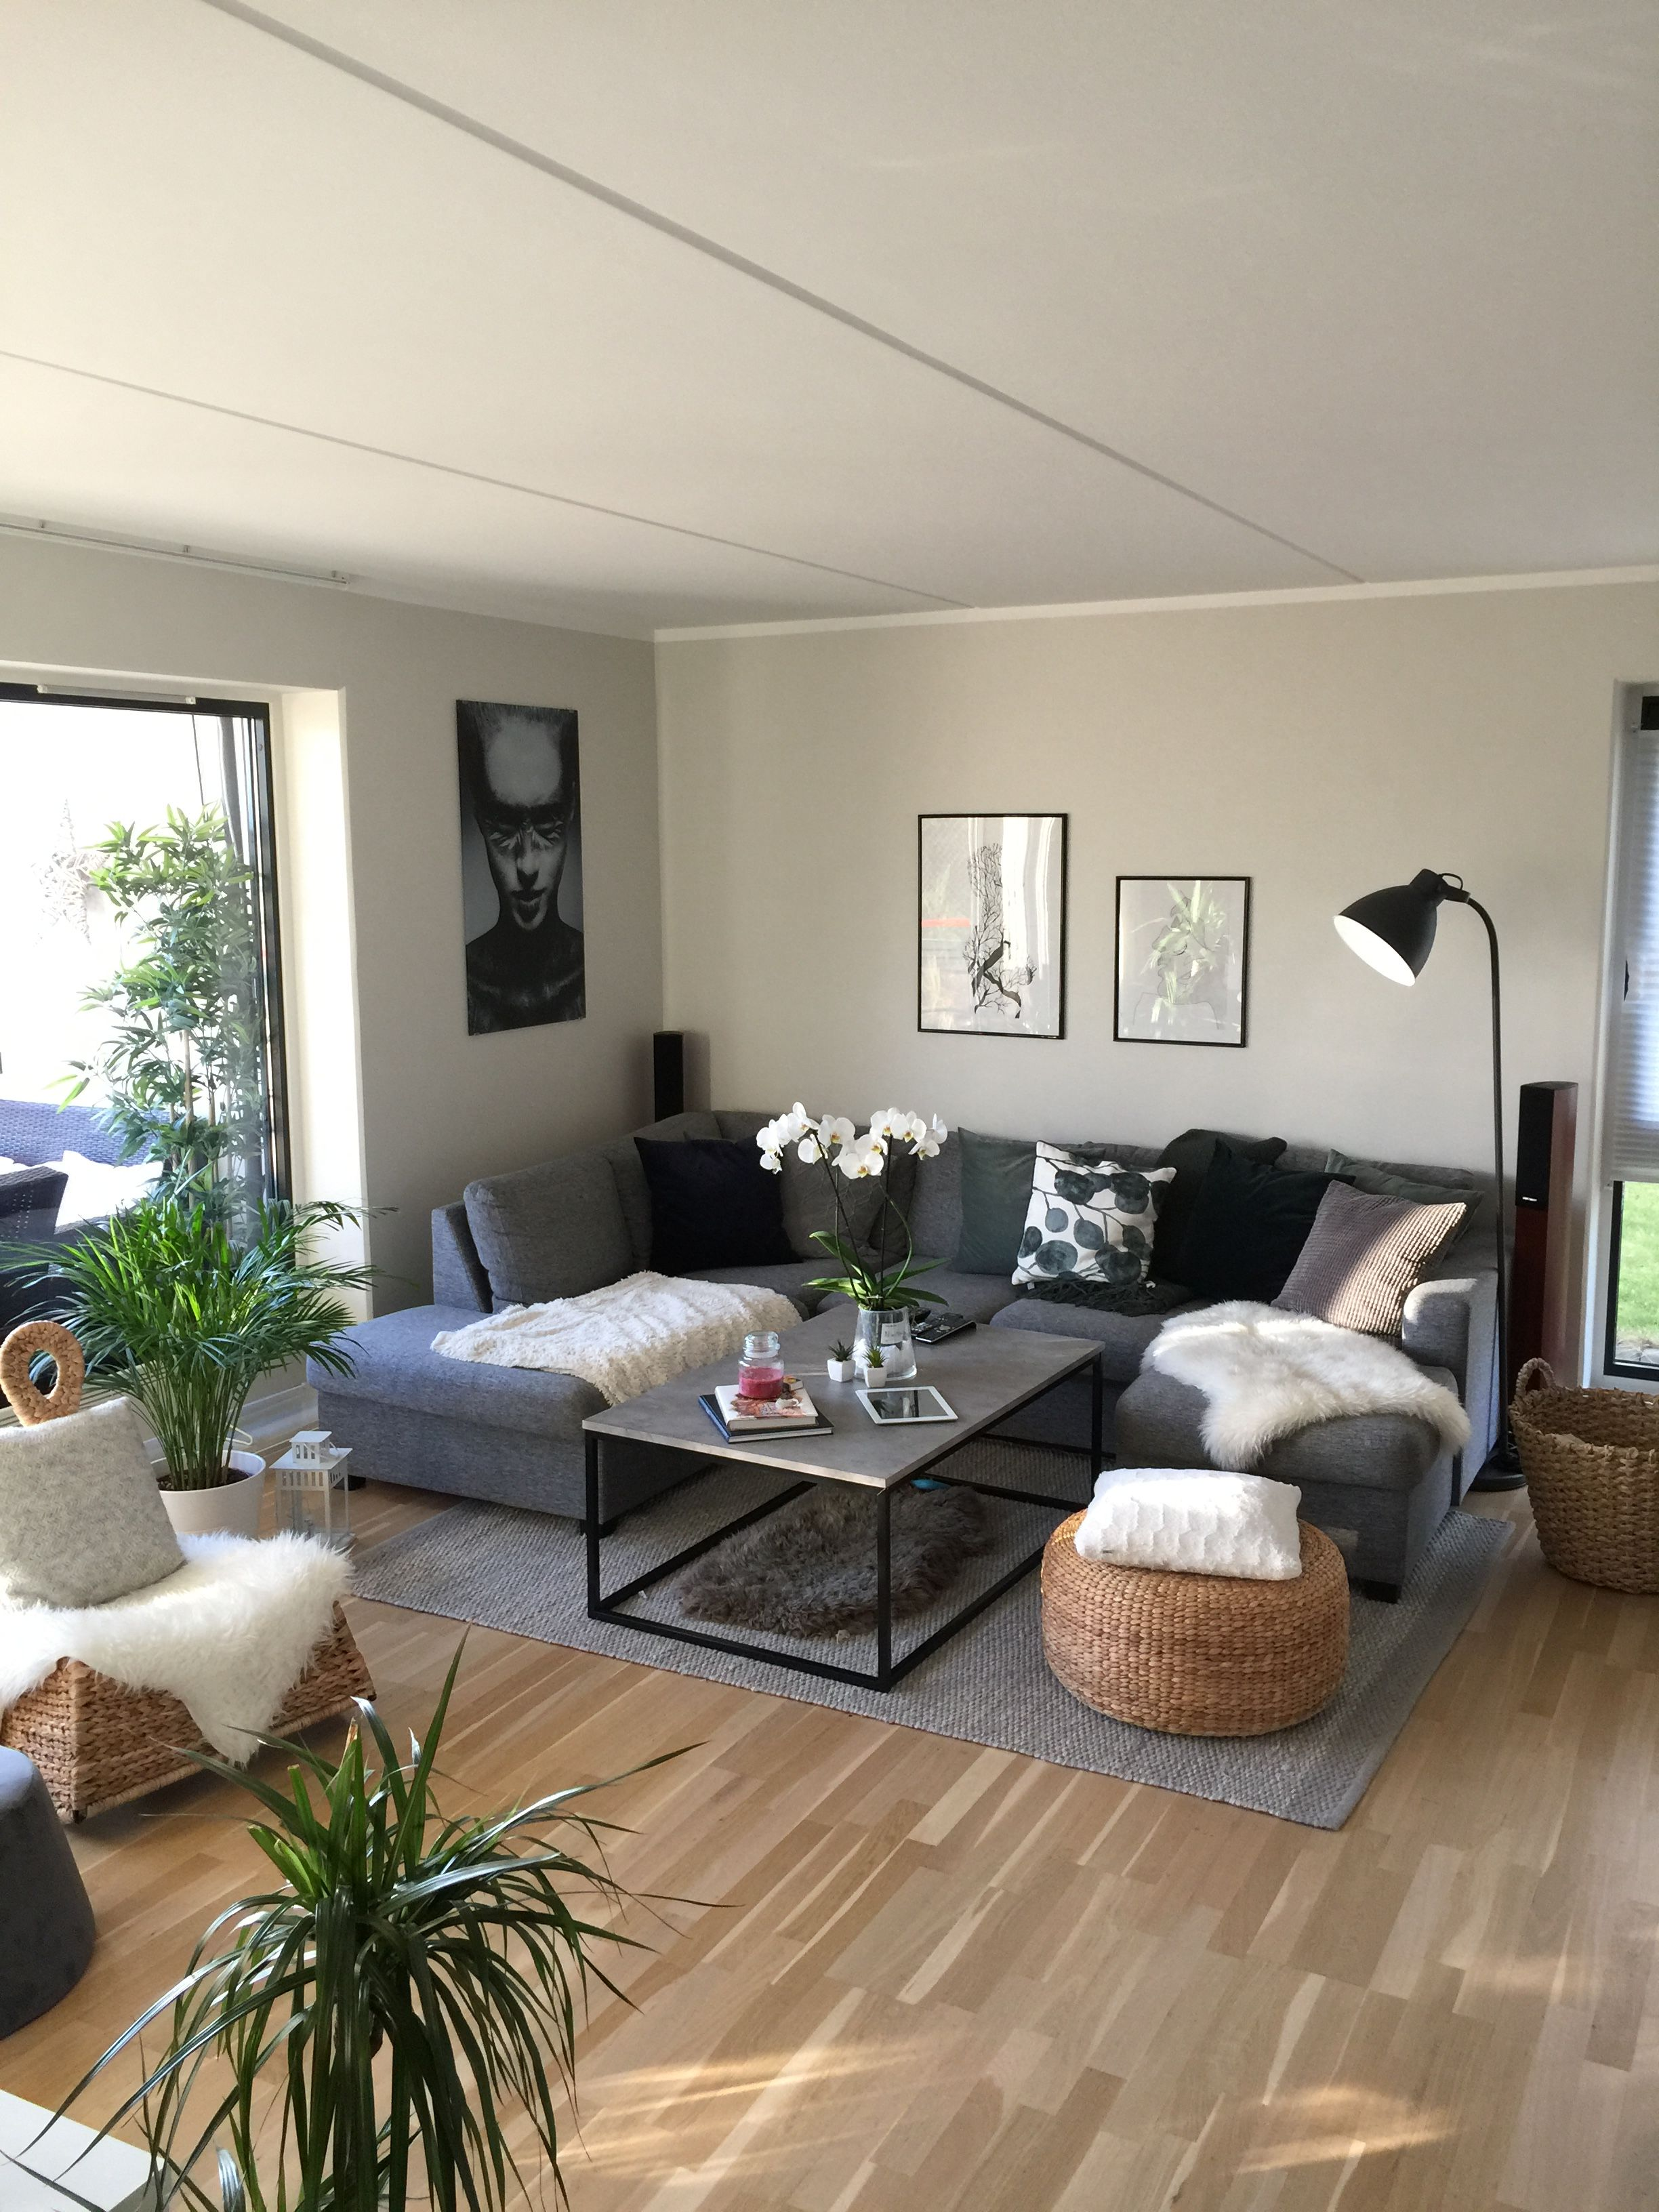 imageandrea patterson on interiors  large living room